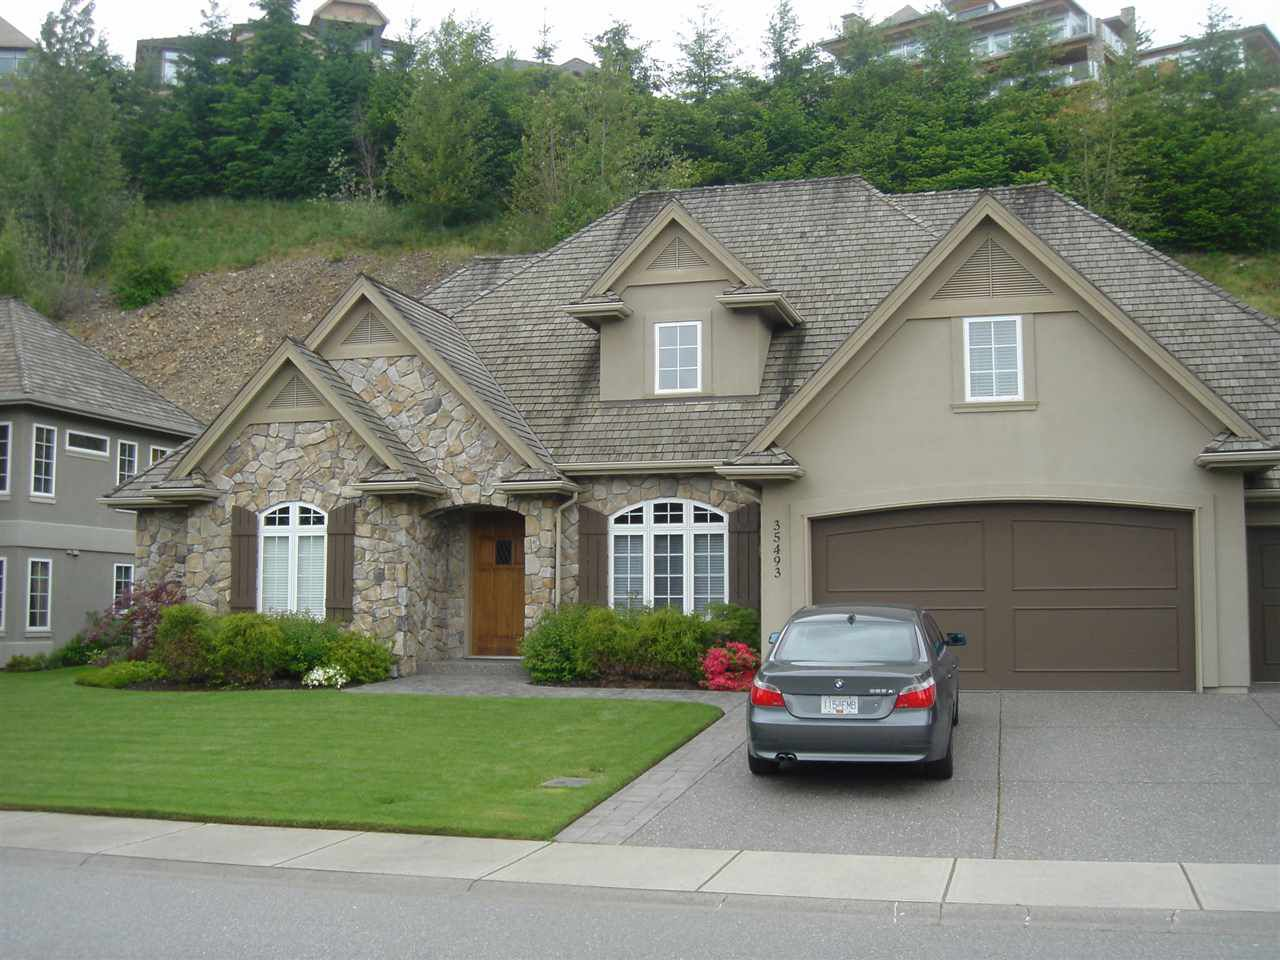 """Main Photo: 35493 DONEAGLE Place in Abbotsford: Abbotsford East House for sale in """"Ealge Mountain"""" : MLS®# R2028905"""